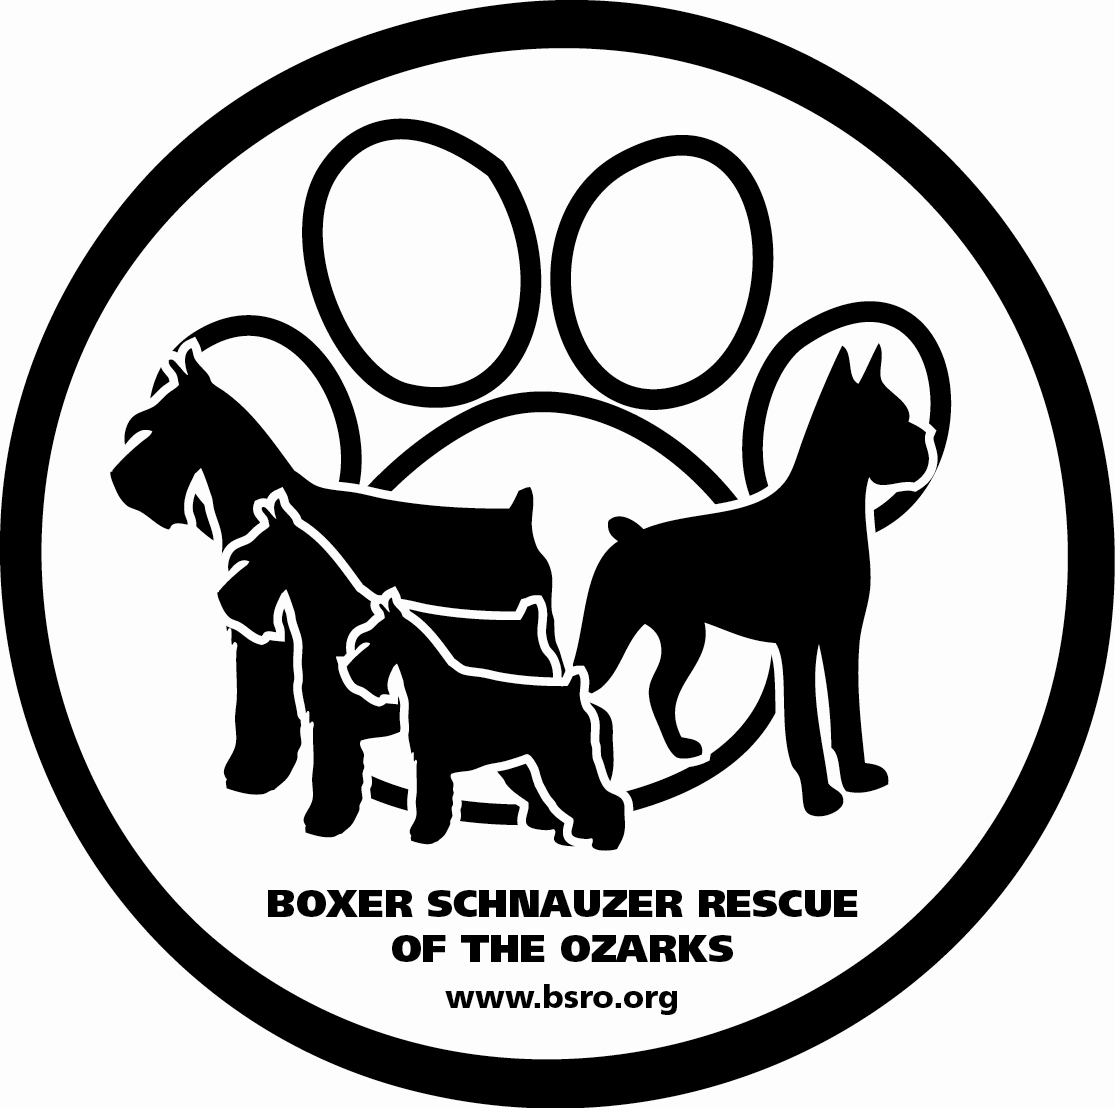 Boxer/Schnauzer Rescue of the Ozarks